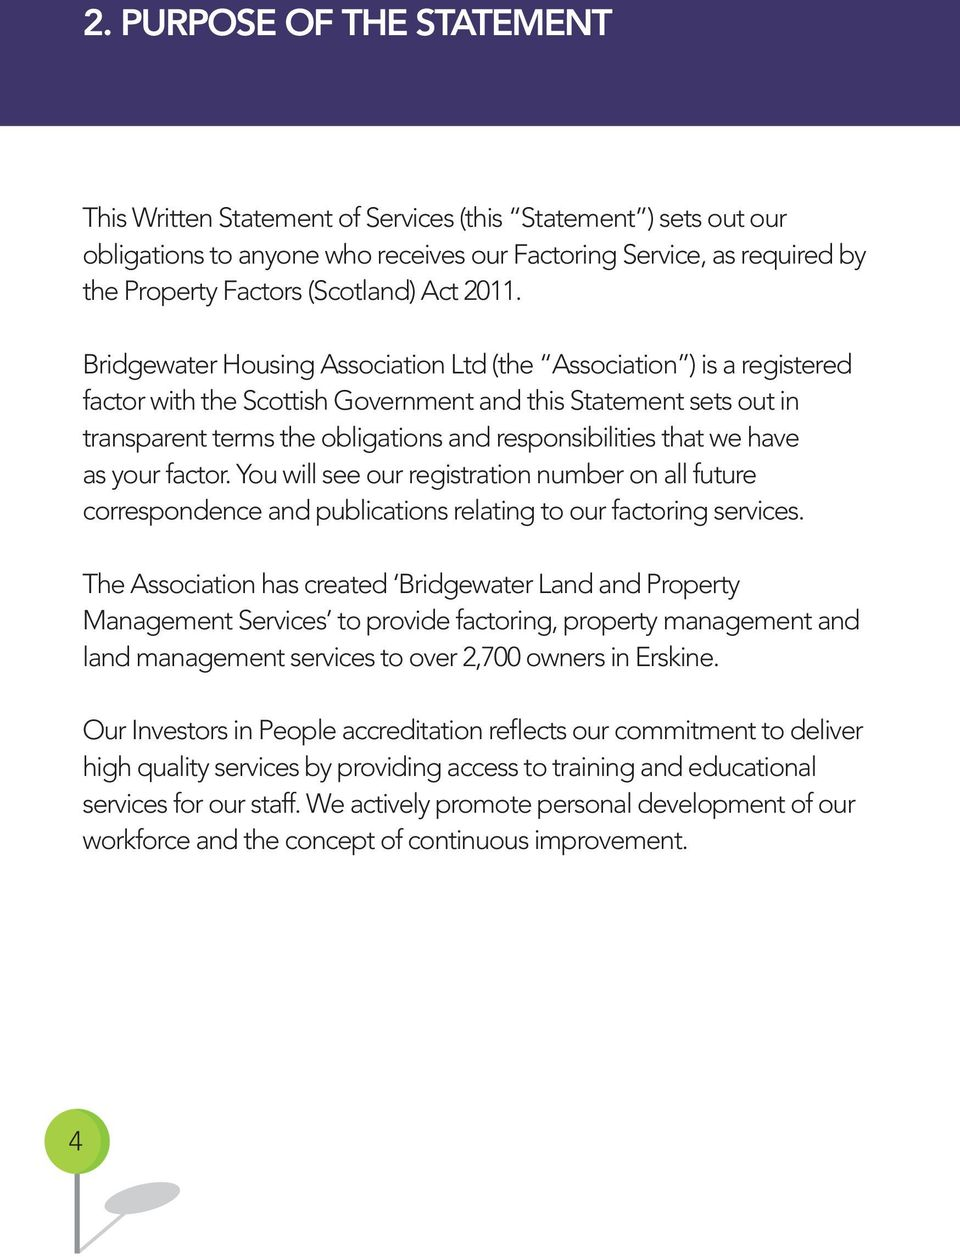 Bridgewater Housing Association Ltd (the Association ) is a registered factor with the Scottish Government and this Statement sets out in transparent terms the obligations and responsibilities that